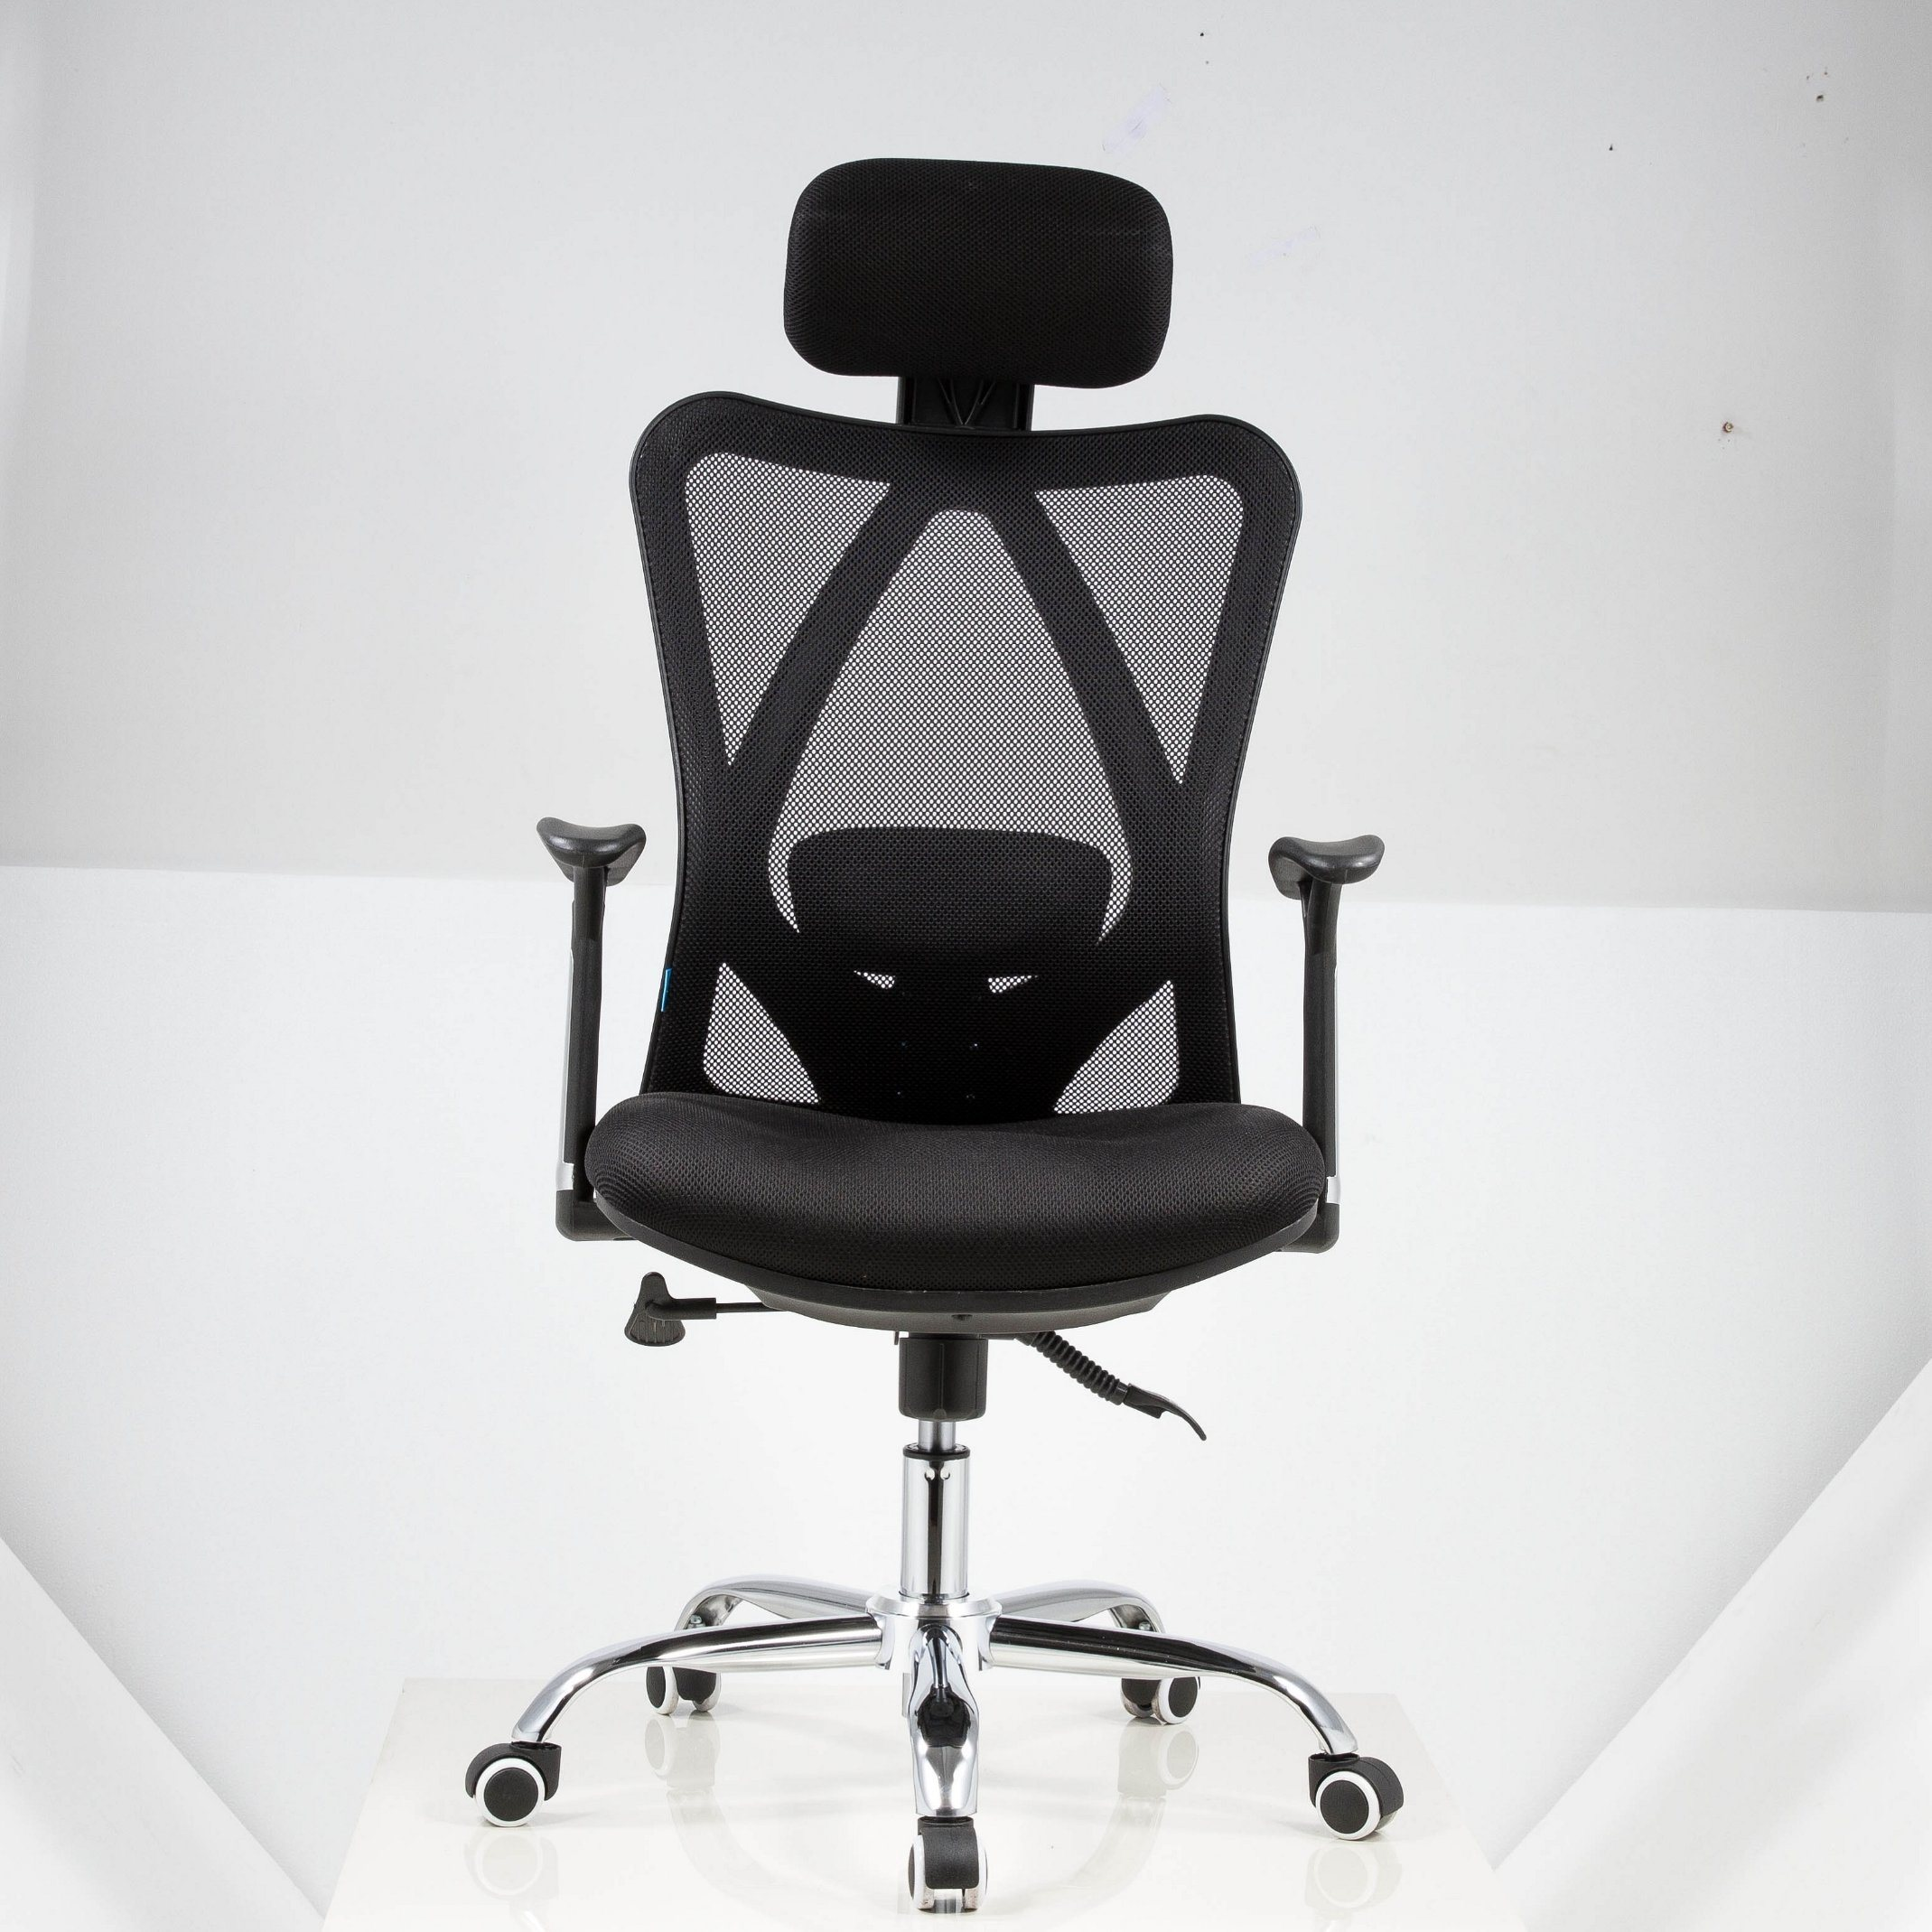 China Upholstered Comfy Computer Mesh Office Desk Chair China Adjustable Chair Executive Chair